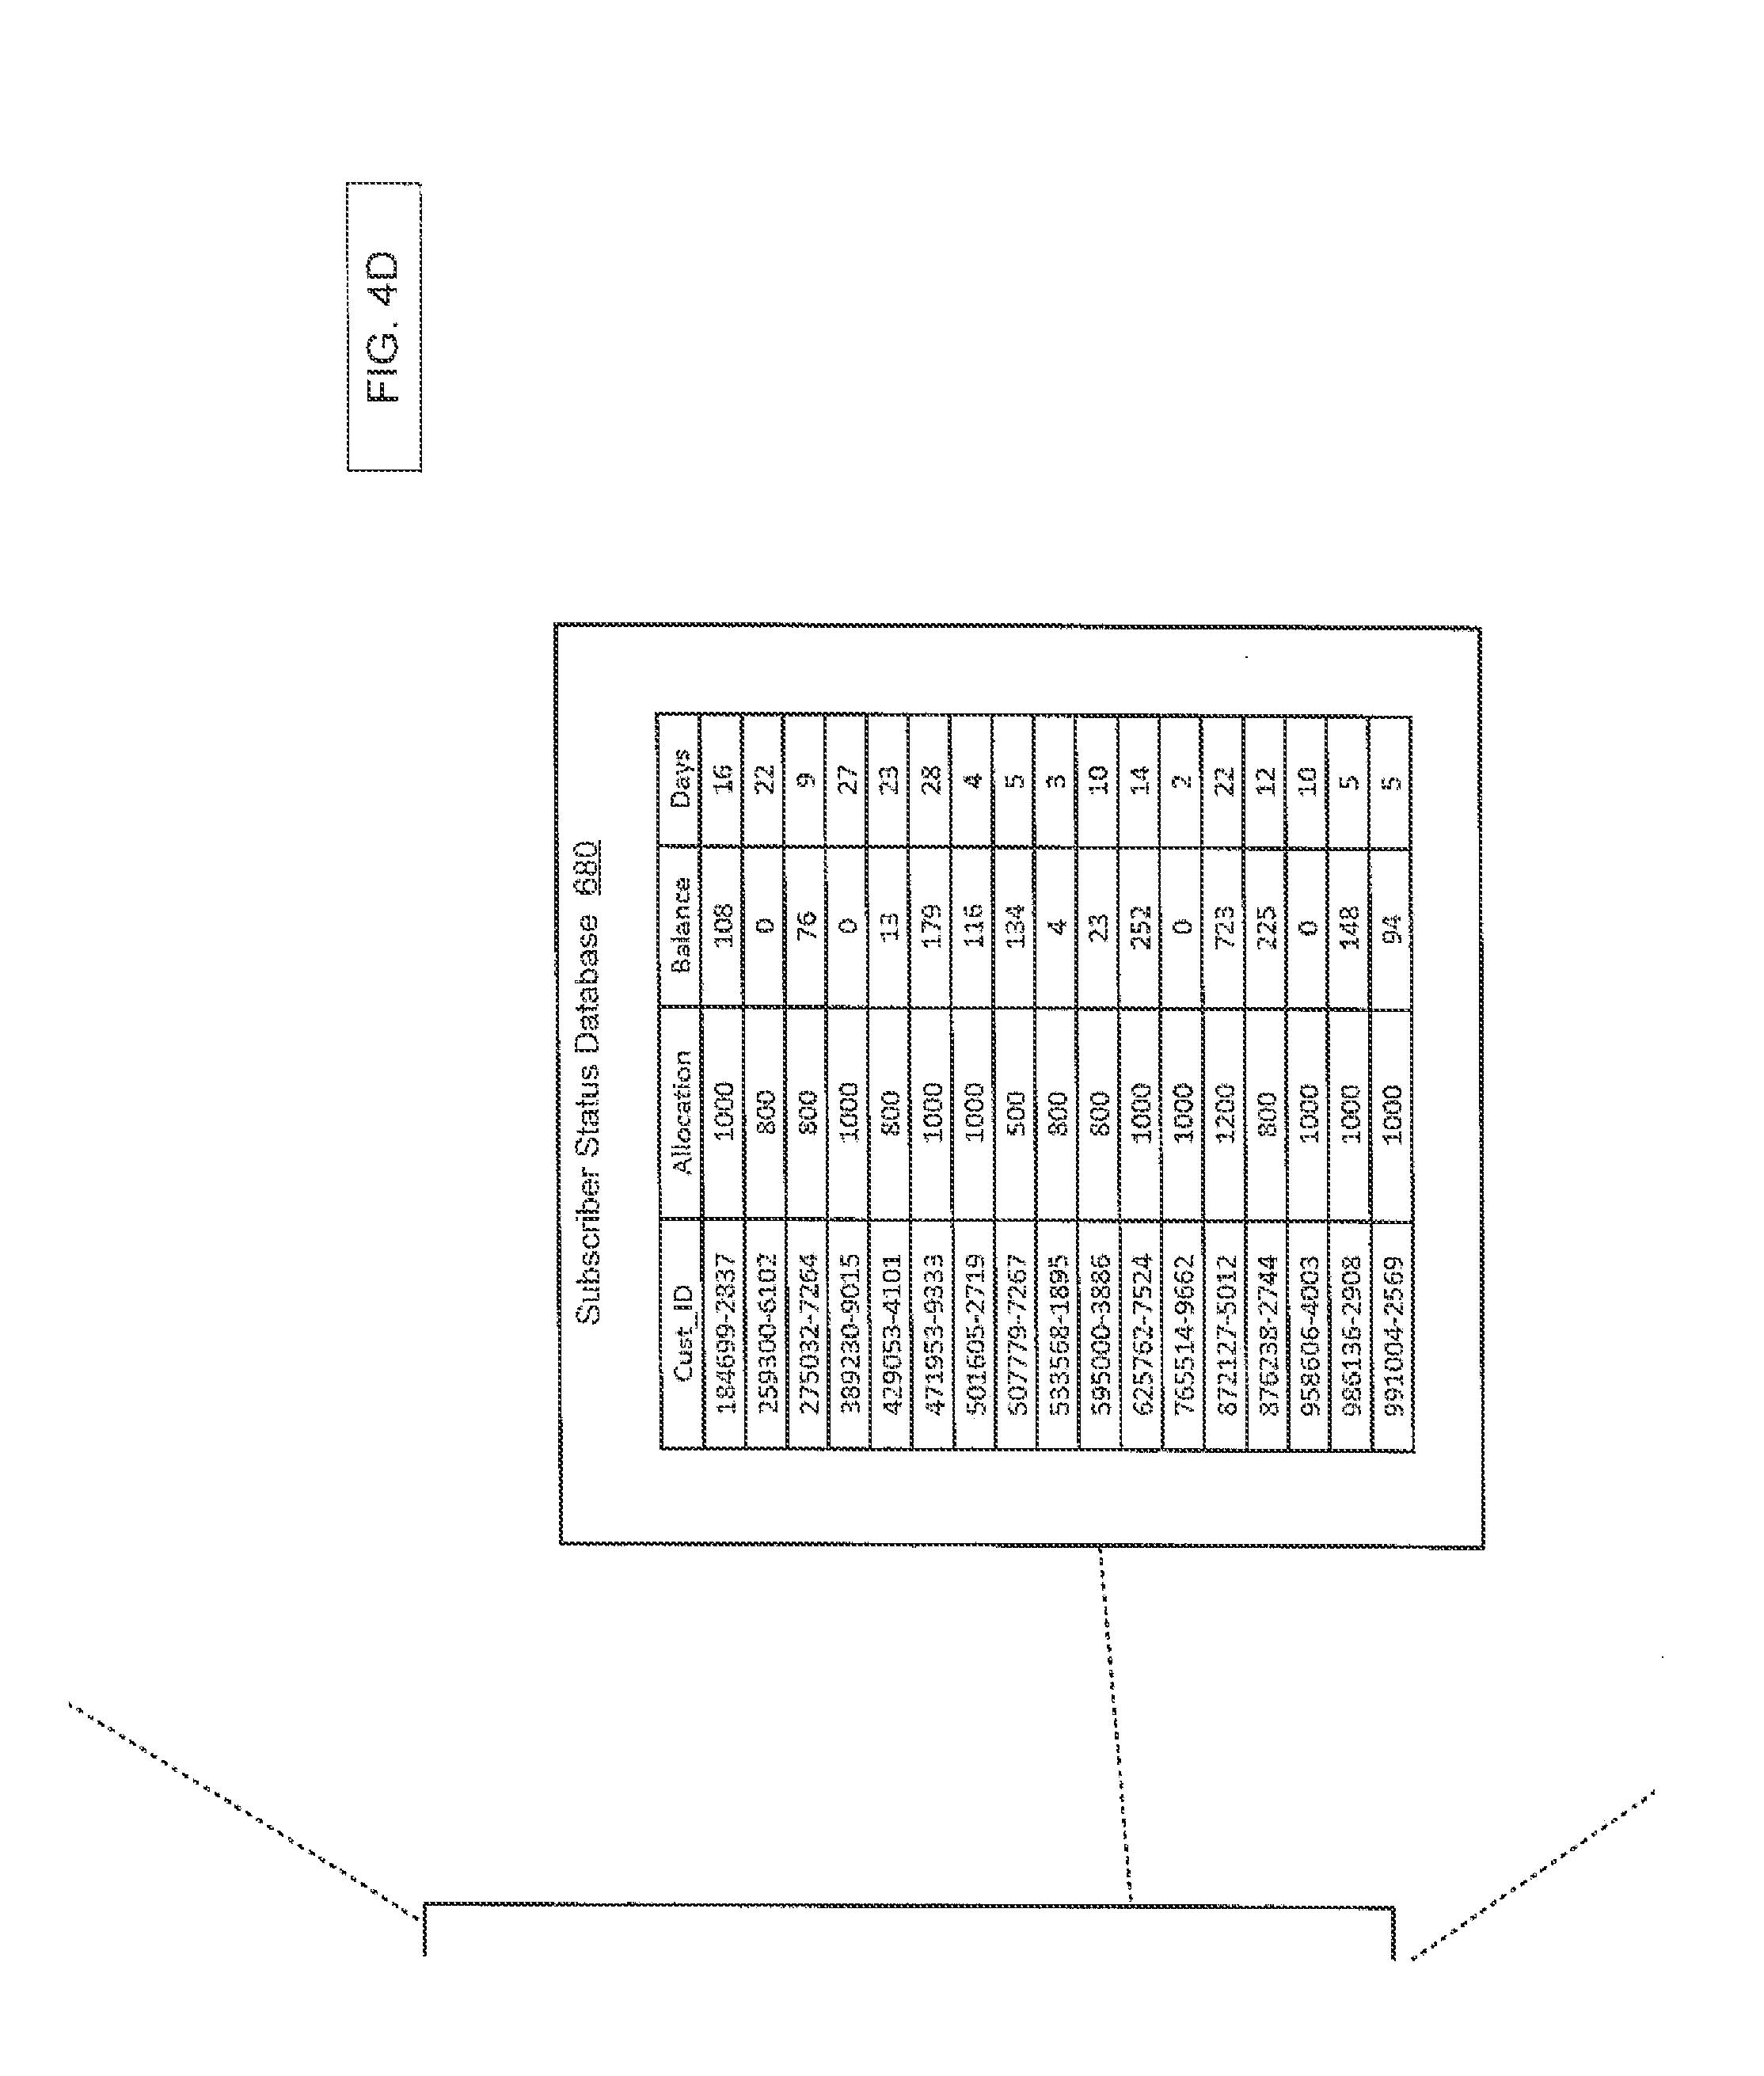 Patent Us20140274056 Protocols For Facilitating Broader Access In Audible Light Sensor By Ic 741 Drawing